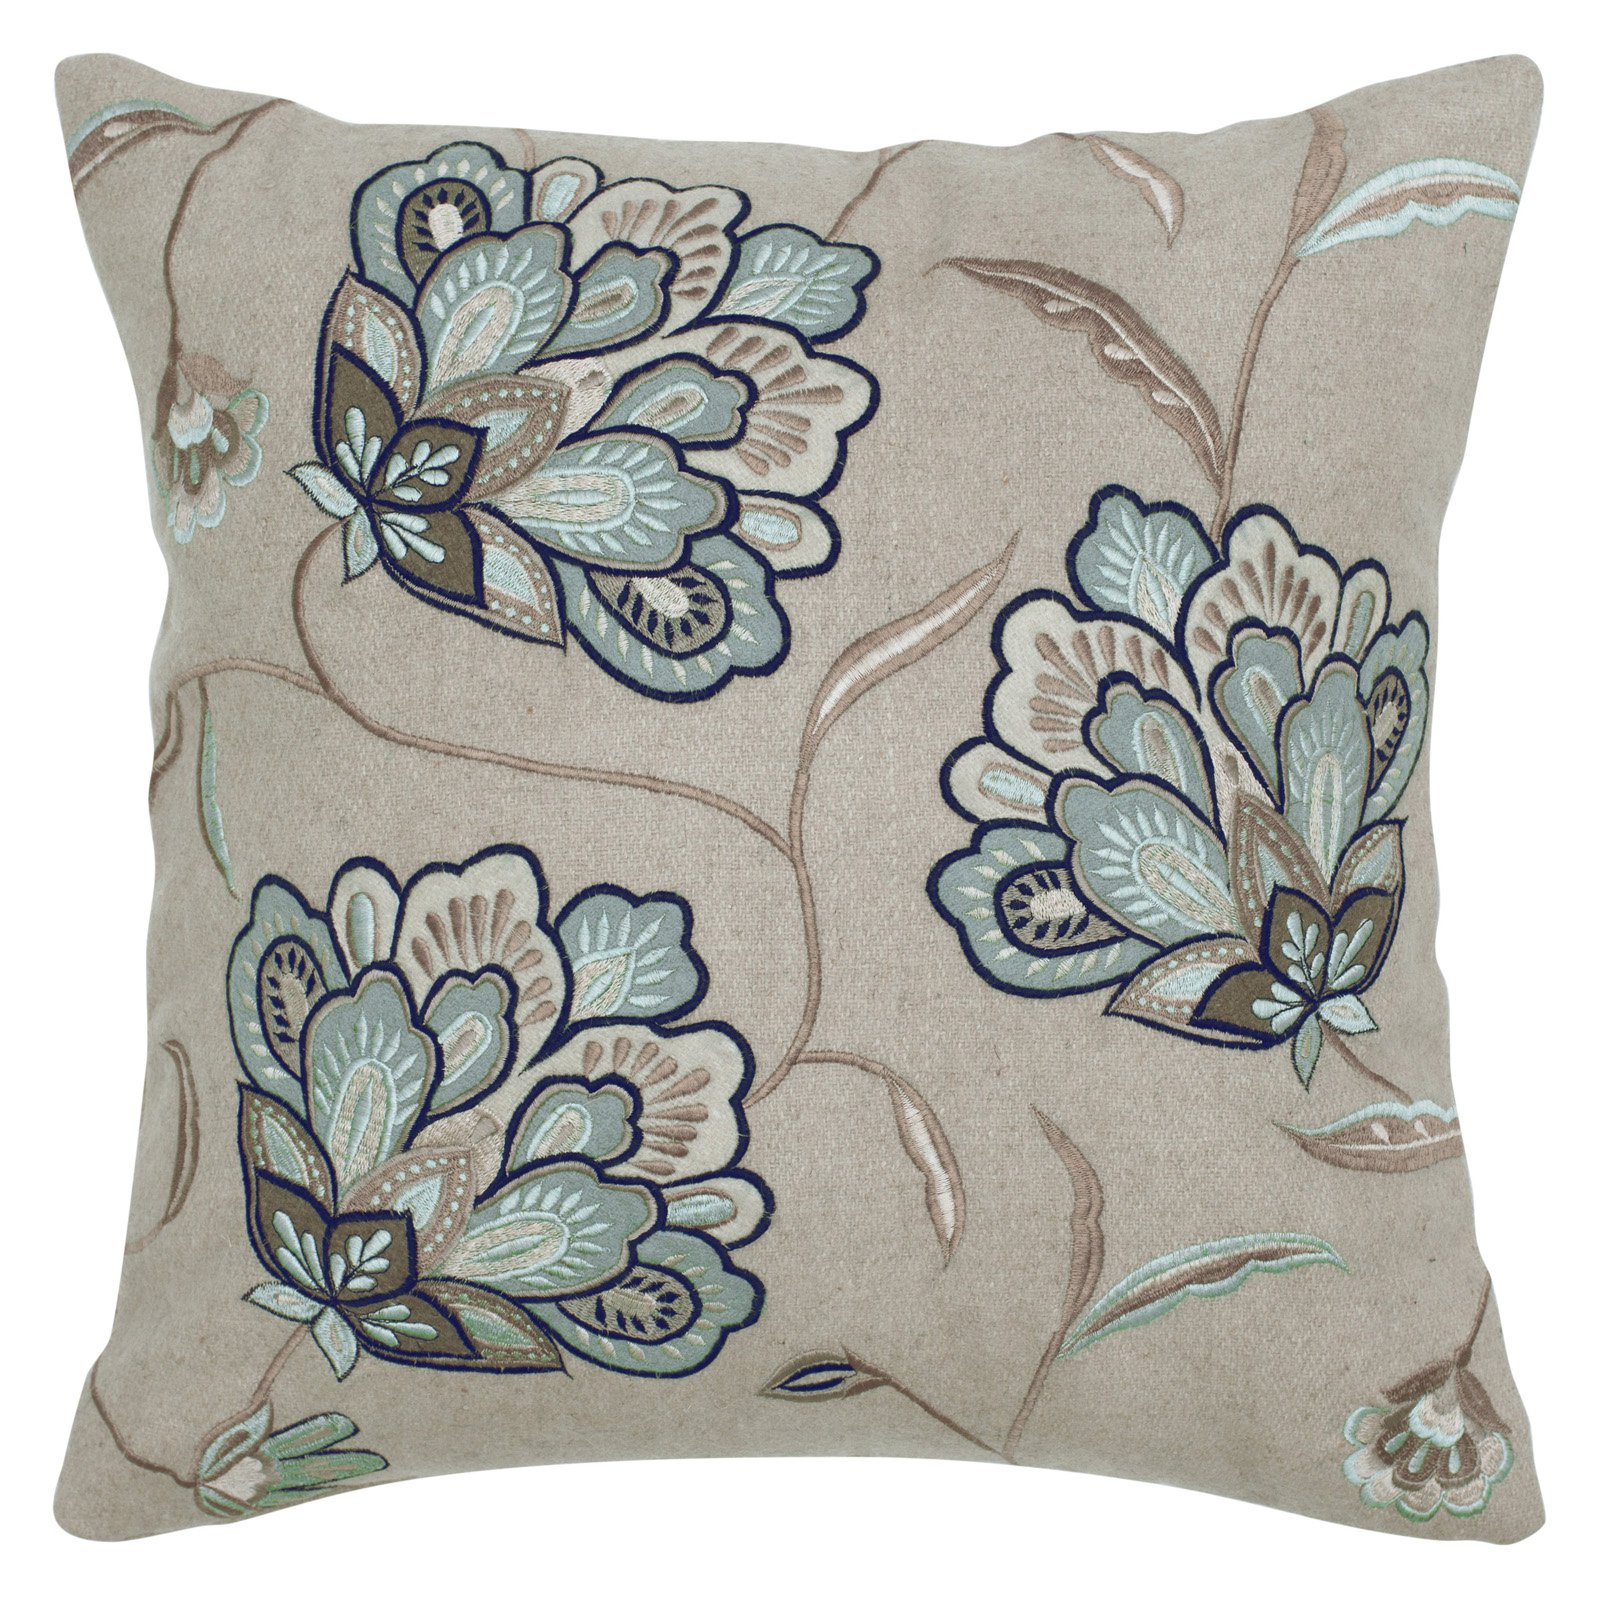 Multi Colored Floral Embroidery Beige Pillow T04272